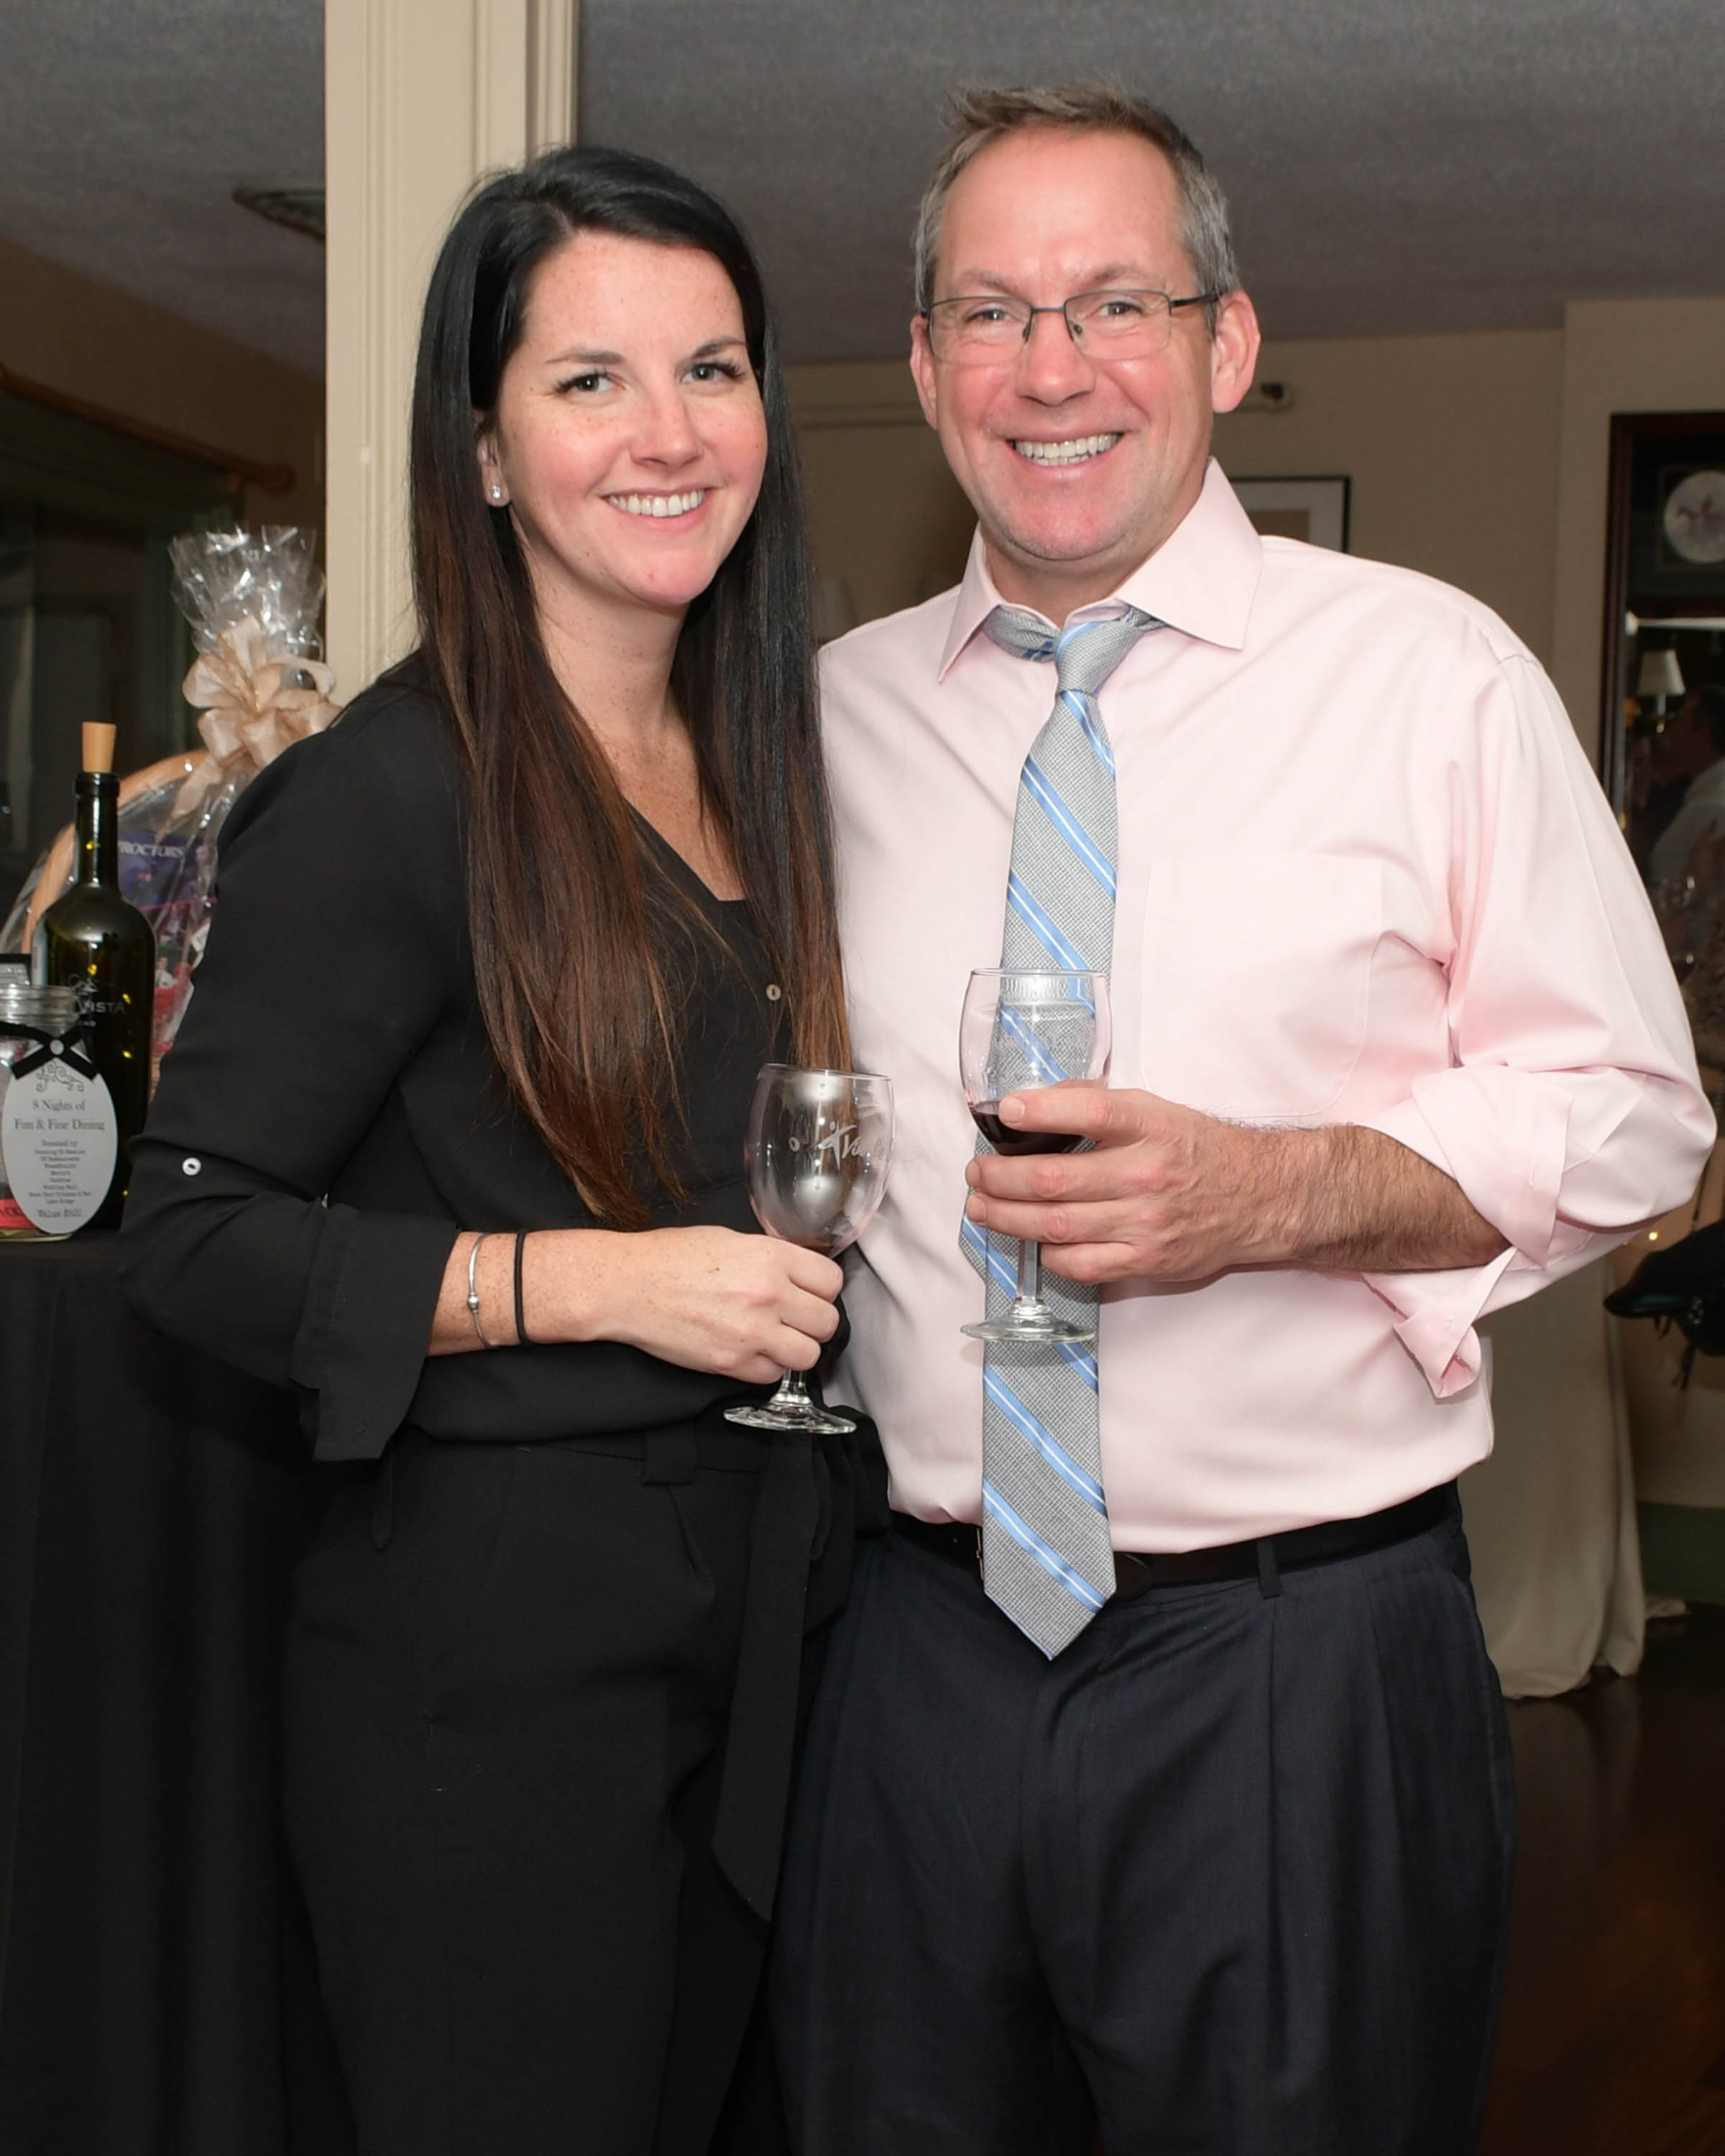 Vin Le Soir to benefit AIM Services, Inc.